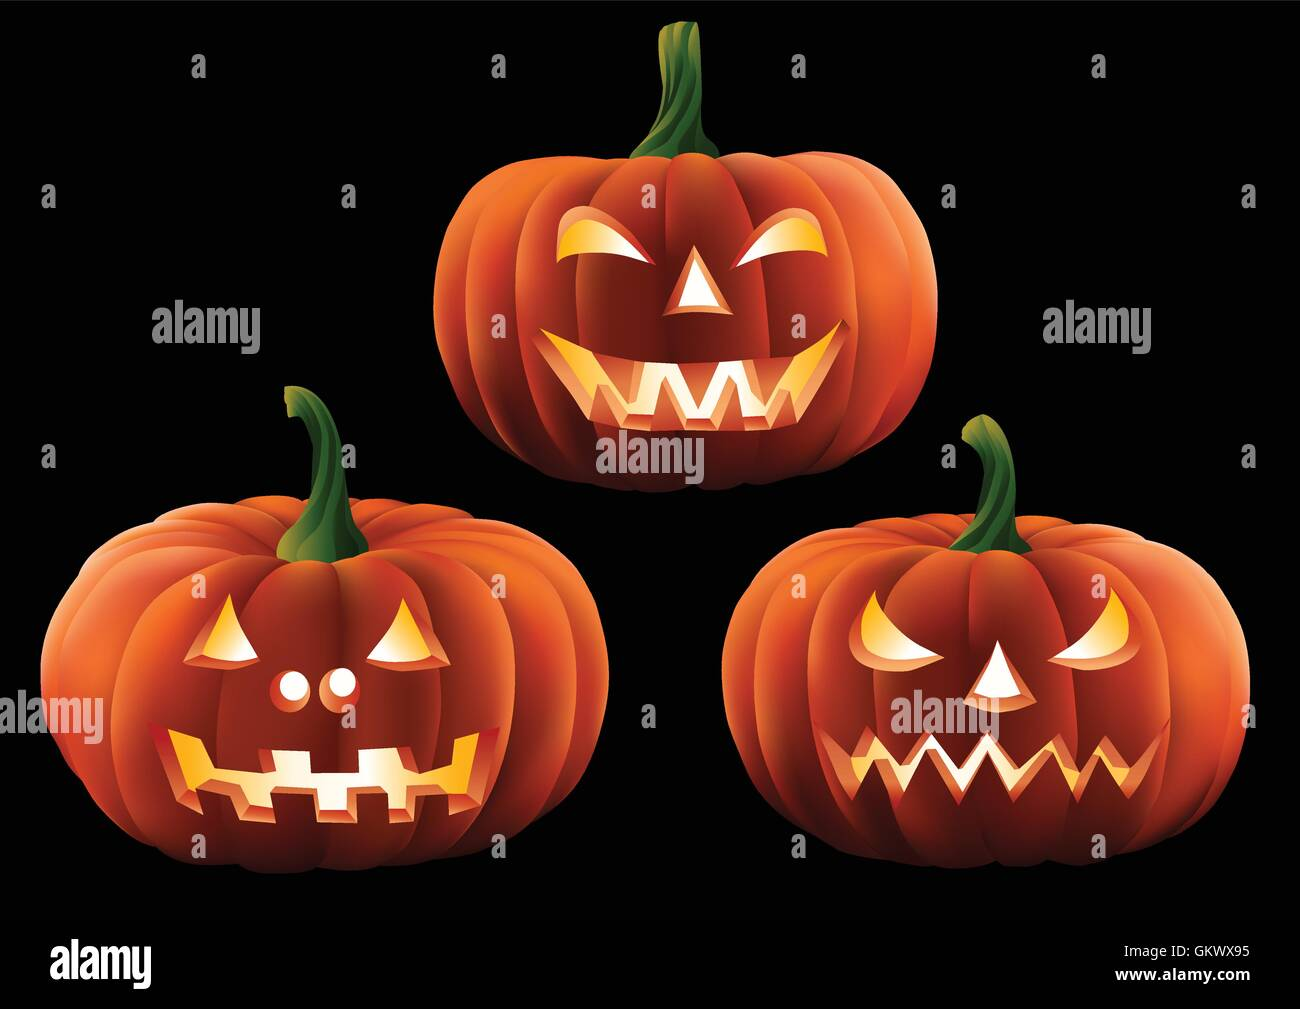 Three carved Halloween pumpkins isolated on a plain background. - Stock Vector